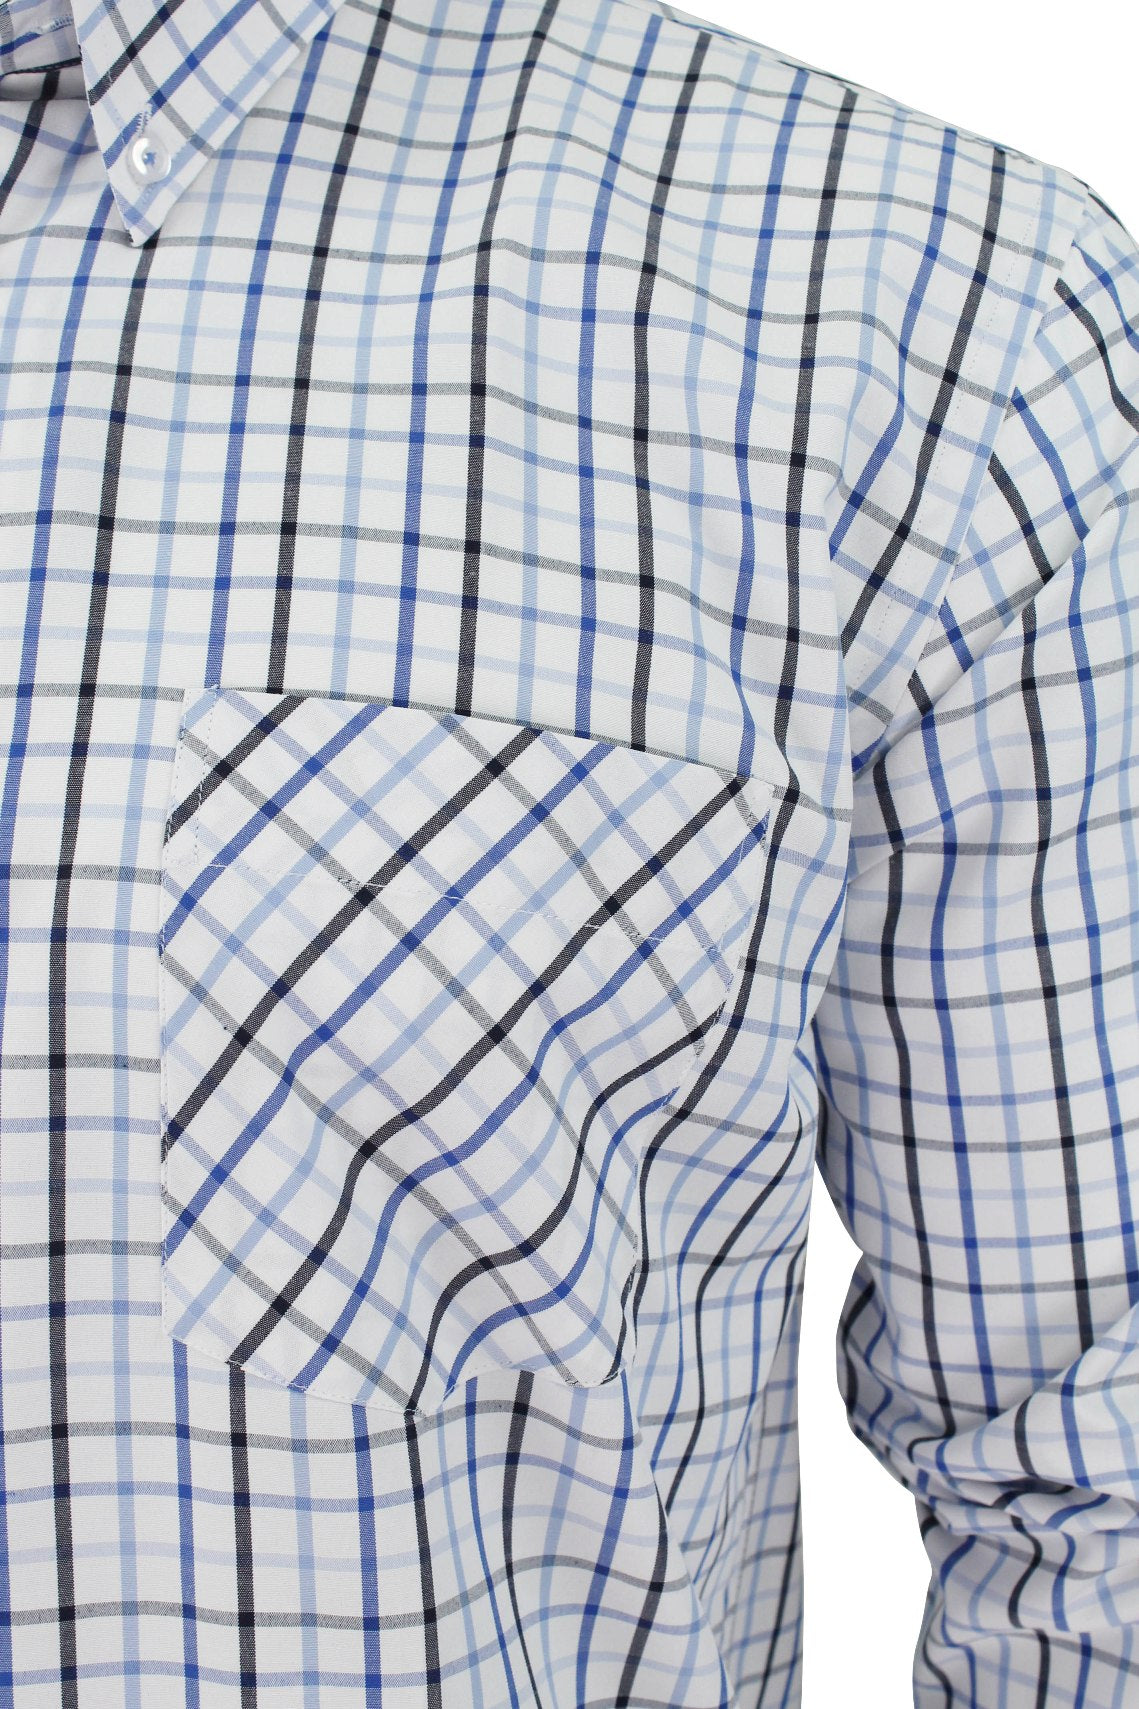 Mens Long Sleeved Check Shirt by Xact Clothing_02_1510116_Blue